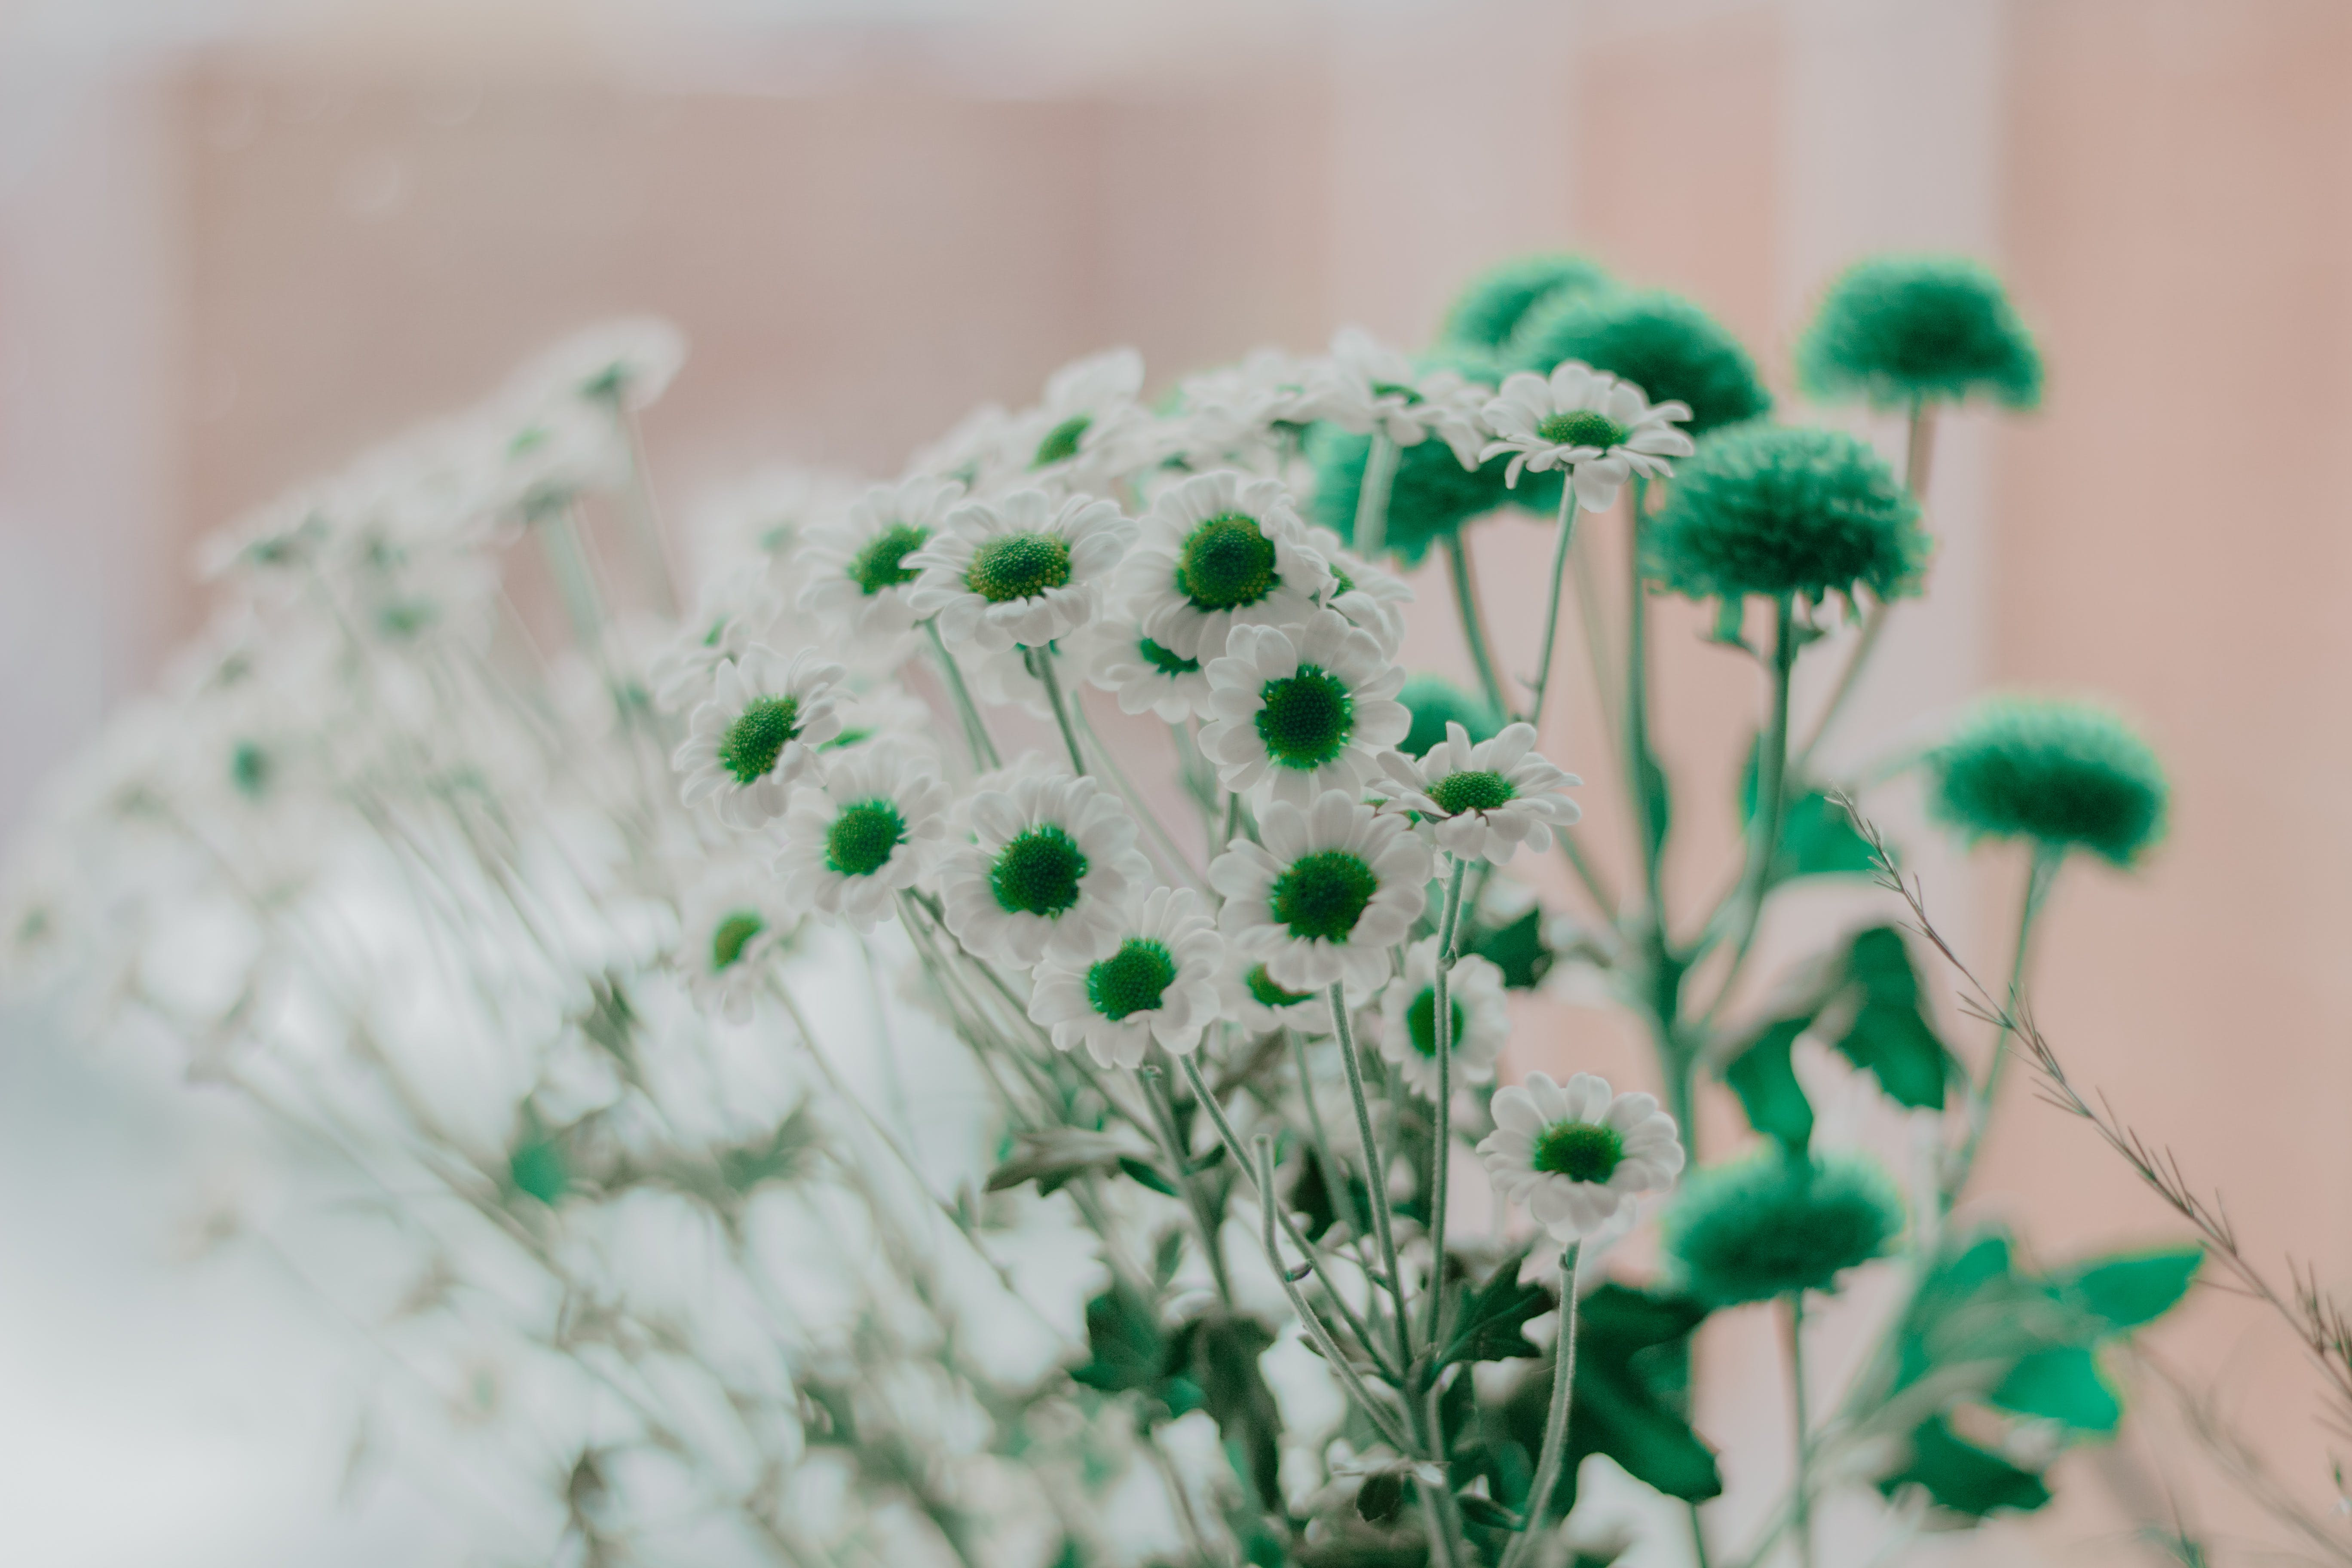 Selective Focus Photography of Green and White Petaled Flowers